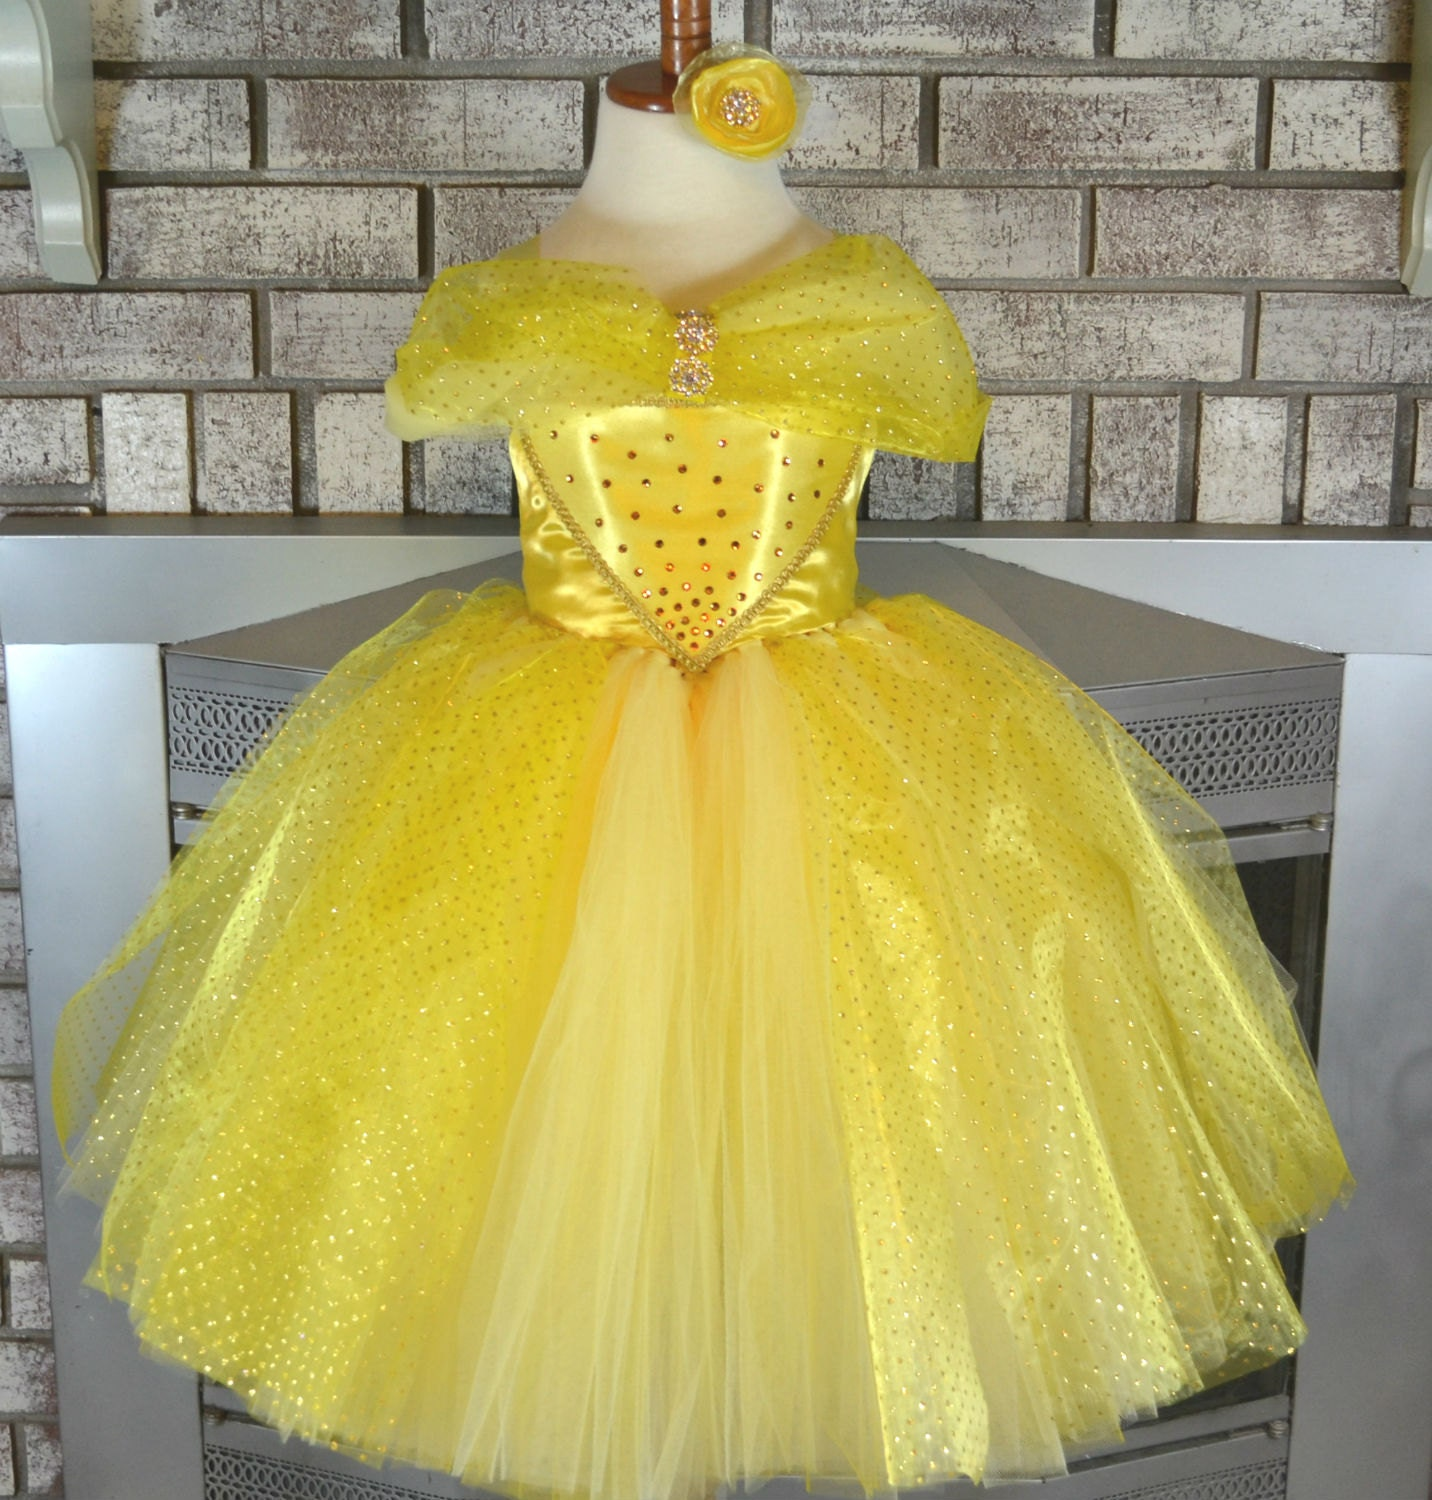 Fabuleux Yellow Princess Tutu Dress Yellow Dress Yellow Tutu Yellow DY62